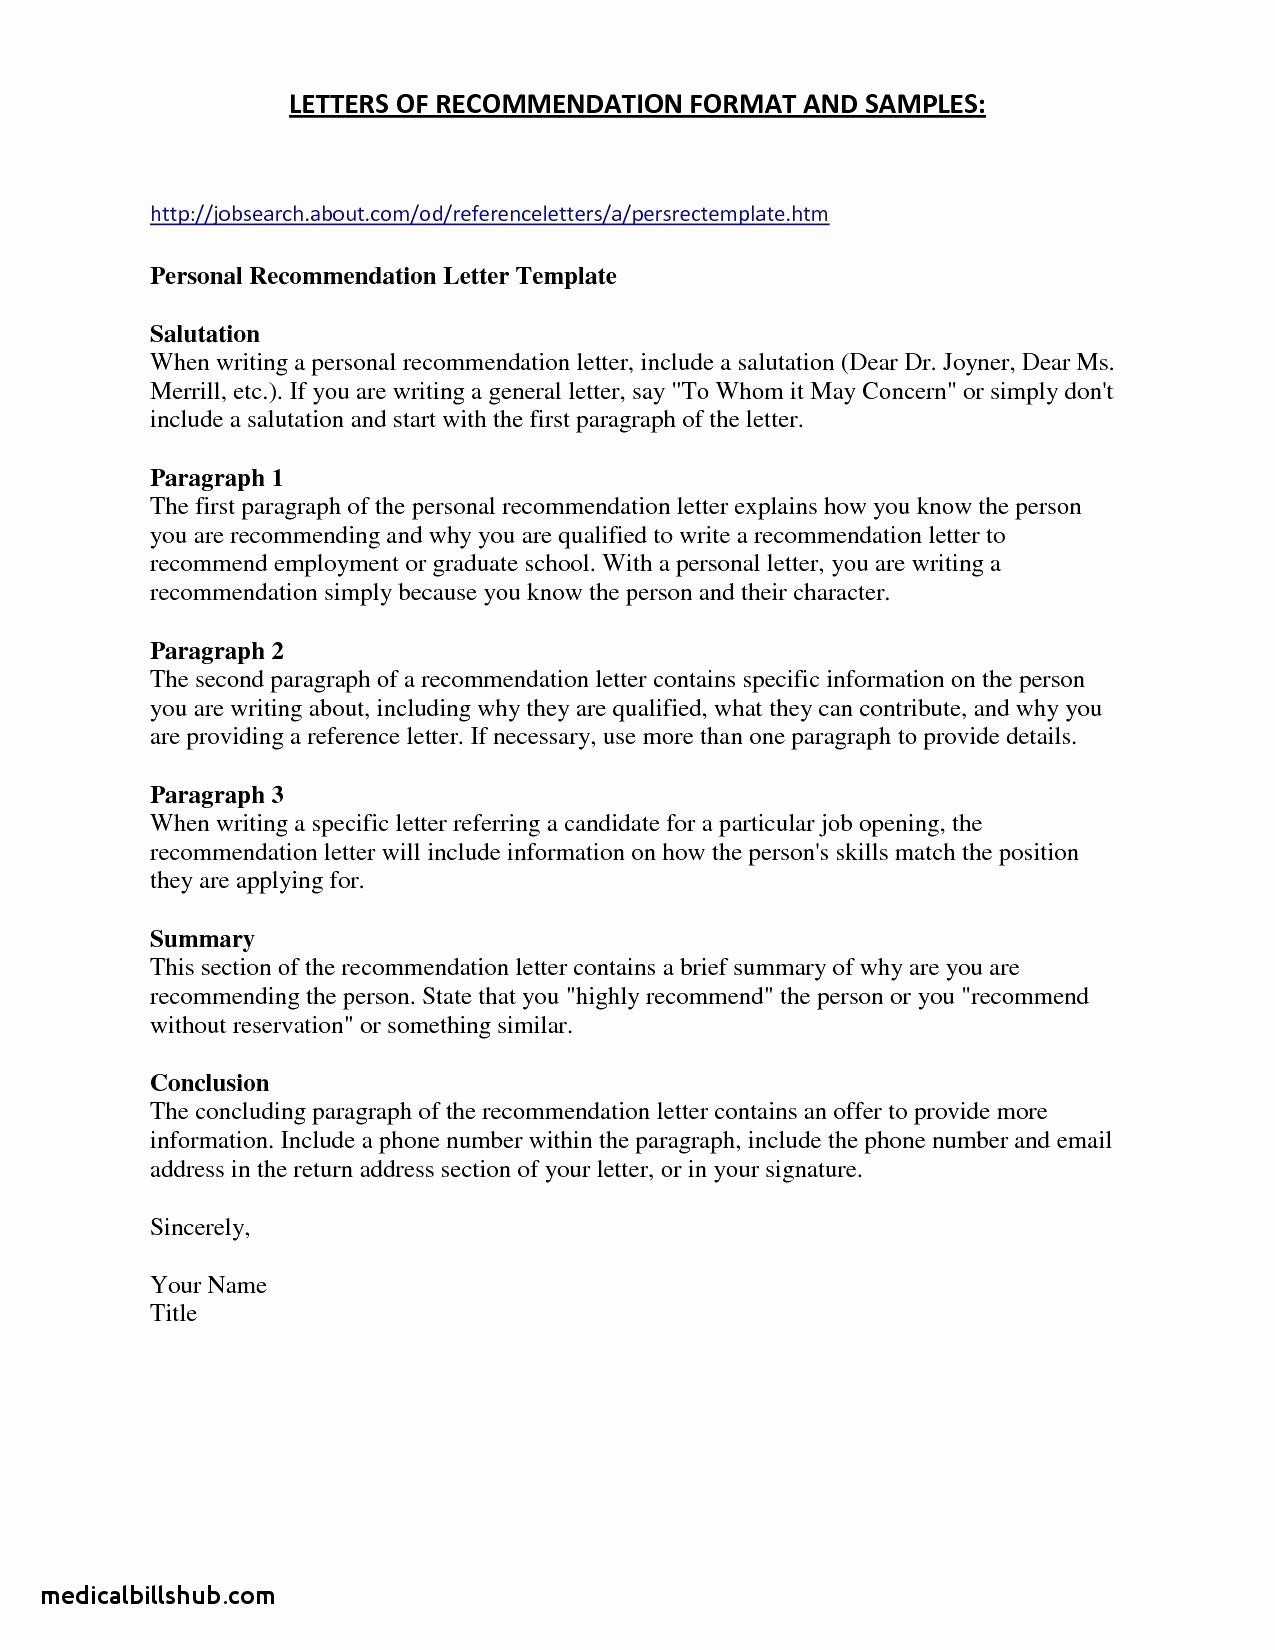 Sample Resume for Dental assistant with No Experience - Registered Dental assistant Cover Letter Financial Medical Examples